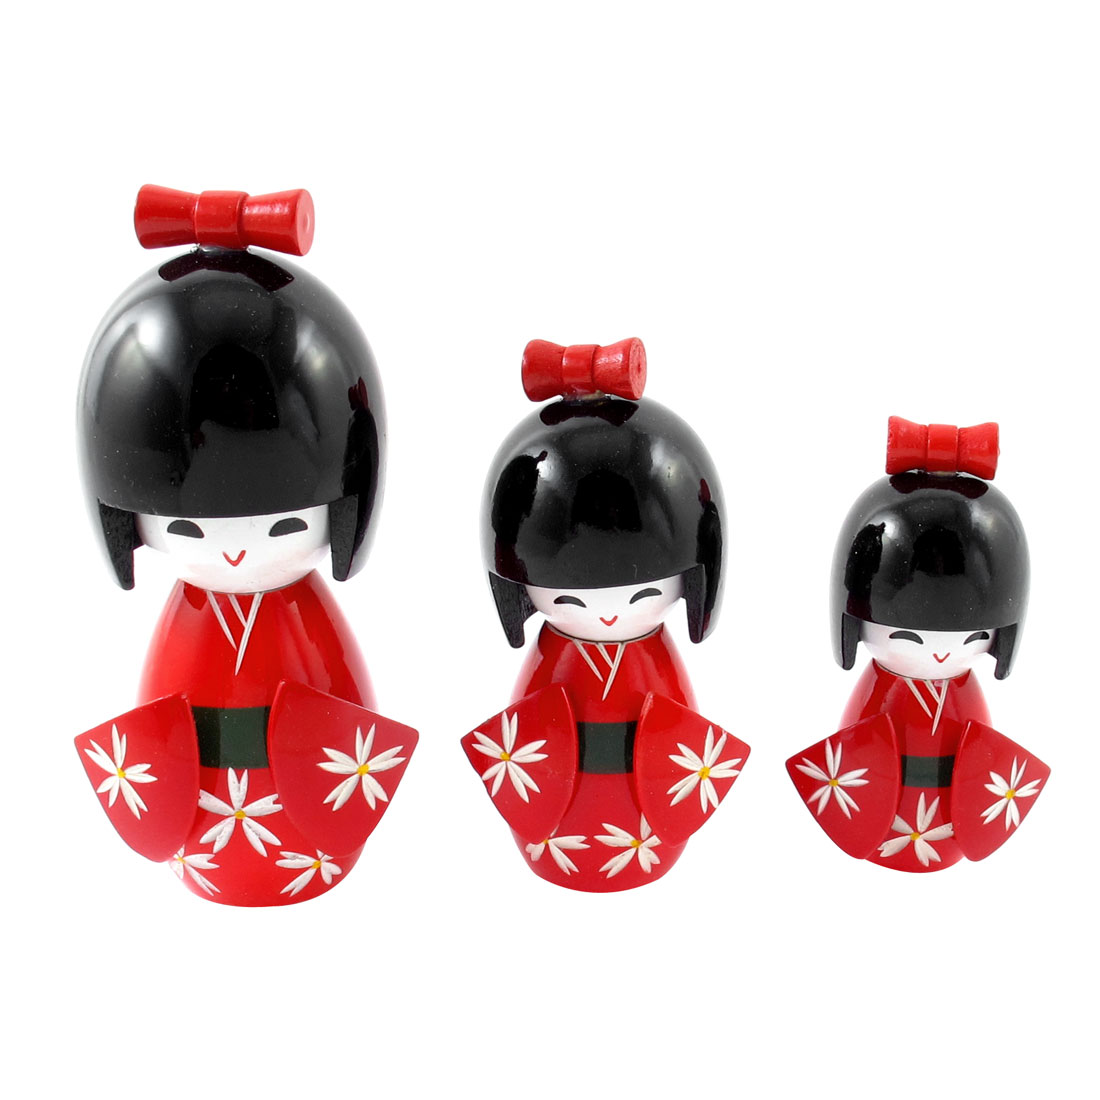 3Pcs Red Black Wooden Japanese Doll Desk Desktop Decoration